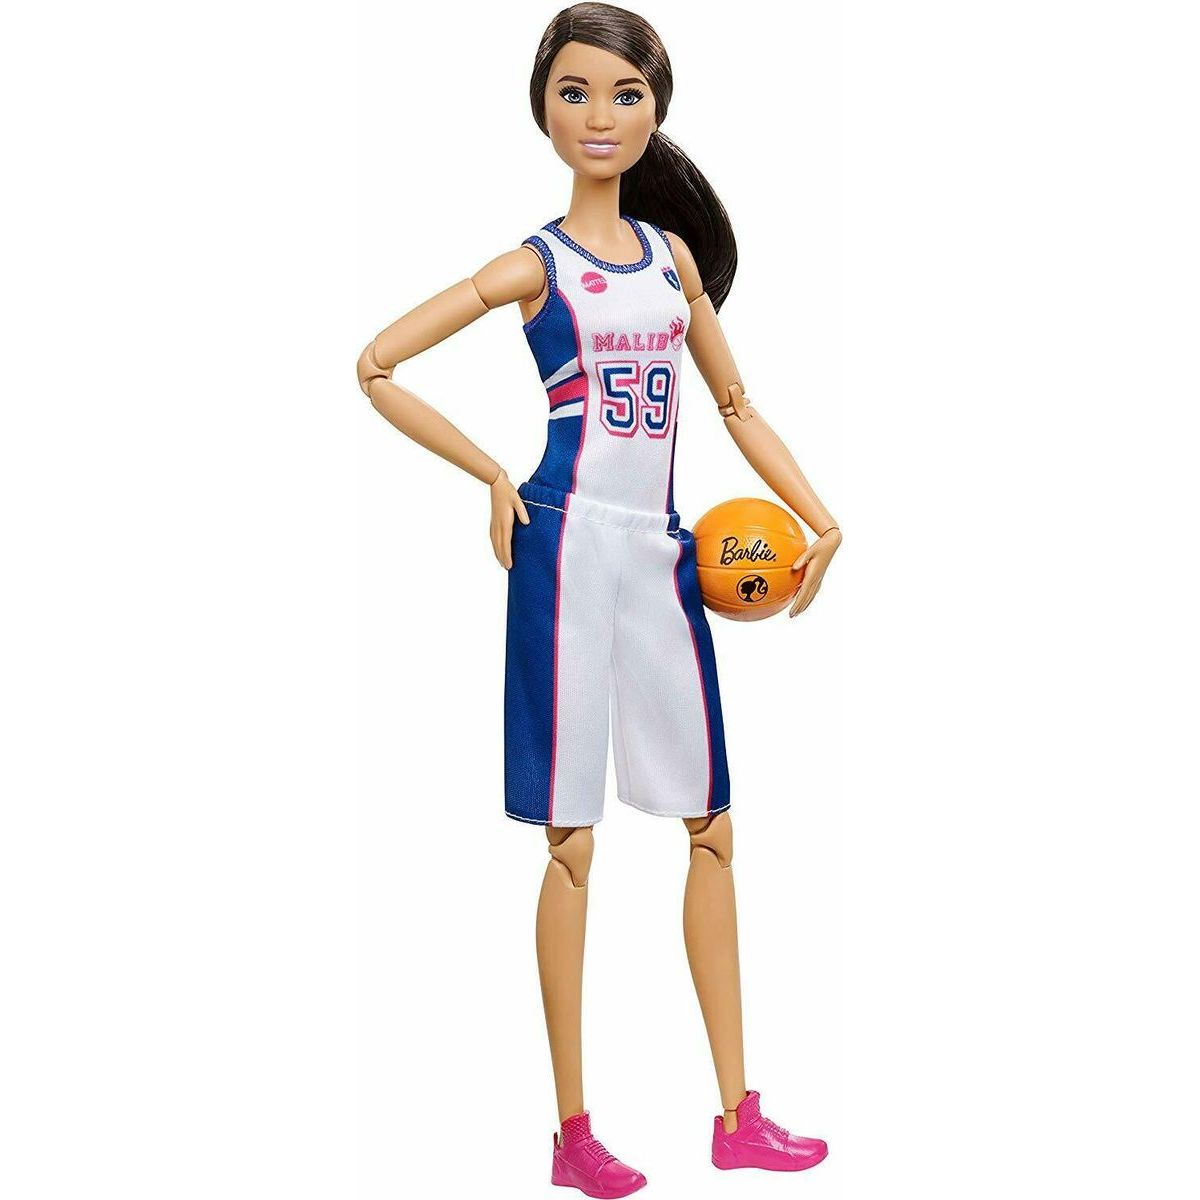 Mattel Barbie sportovkyně basketball